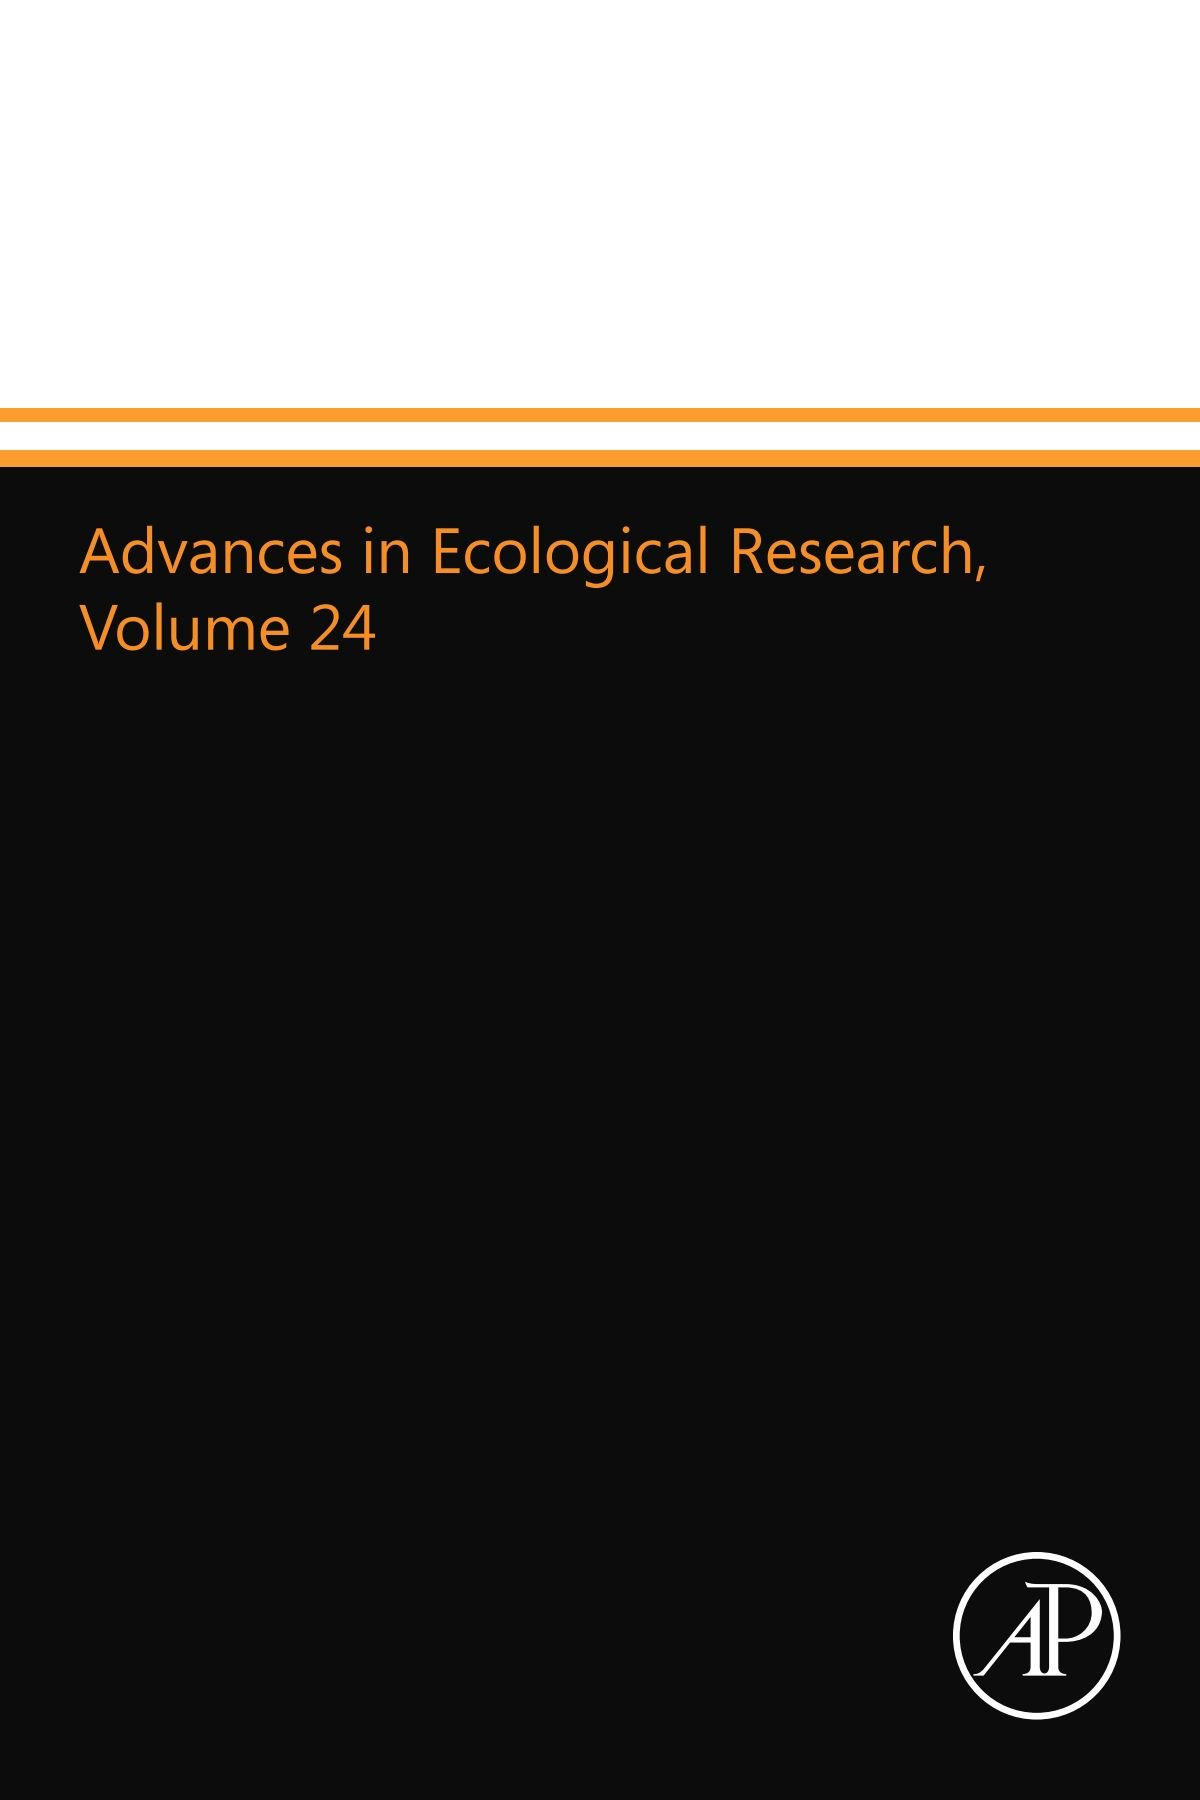 Advances in Ecological Research: 24